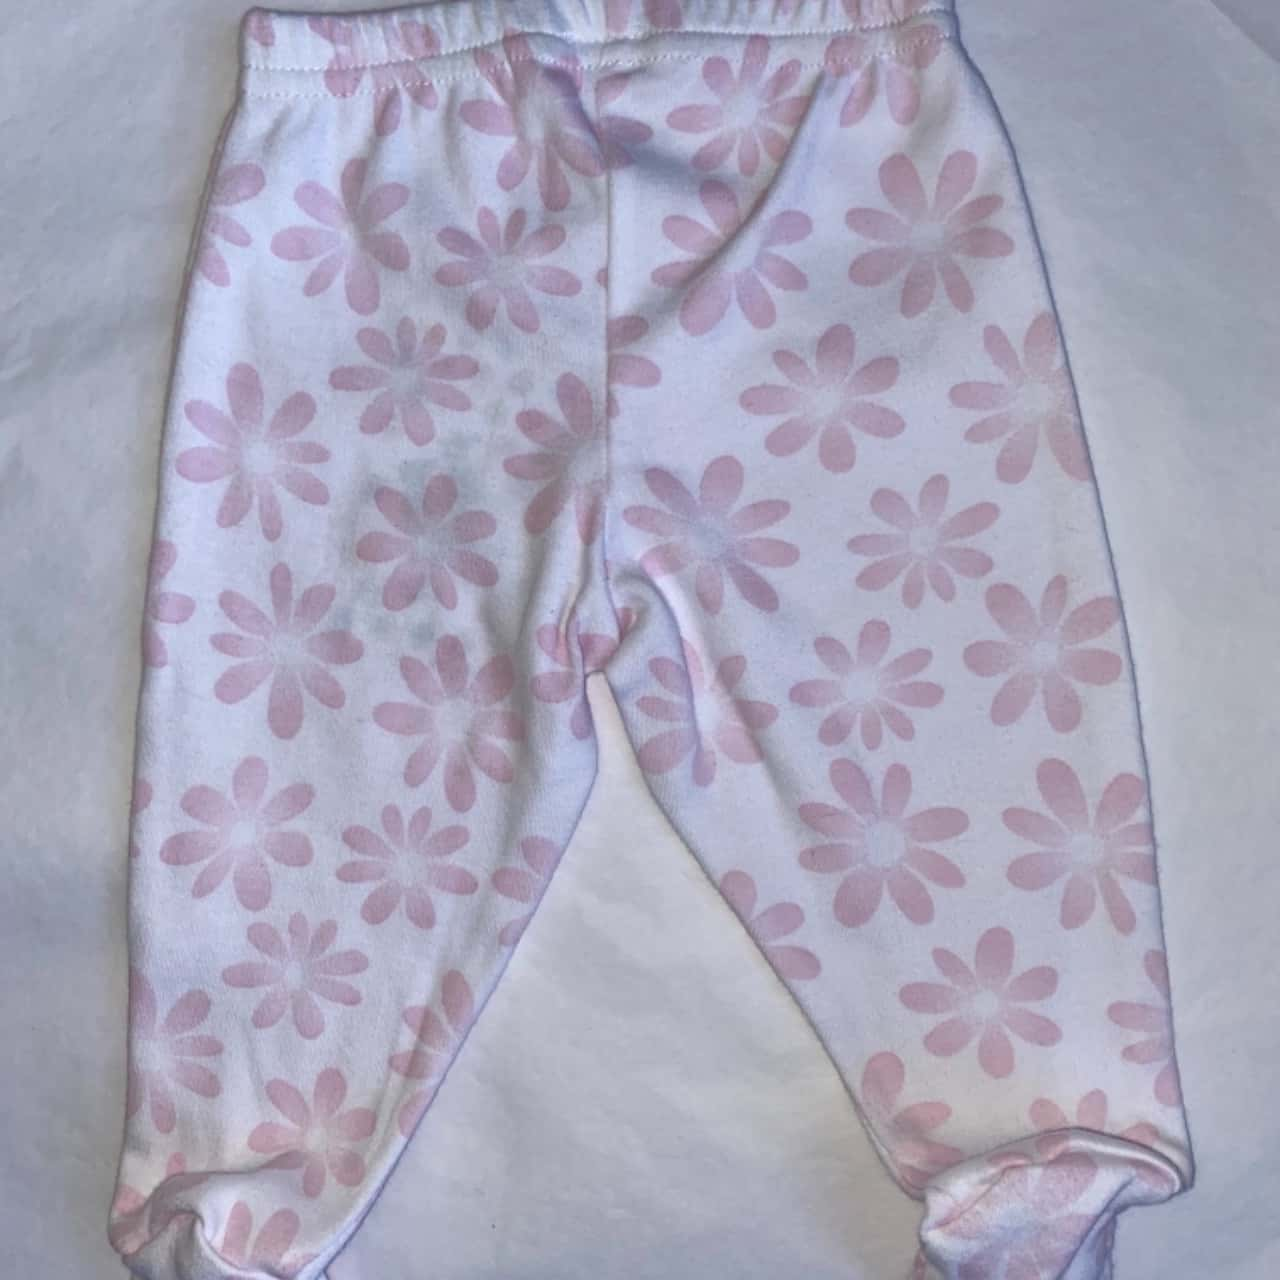 ** REDUCED LAST CHANCE  ** Baby Berry Kids Size 0000 Pink & White Bottoms - New With Tags